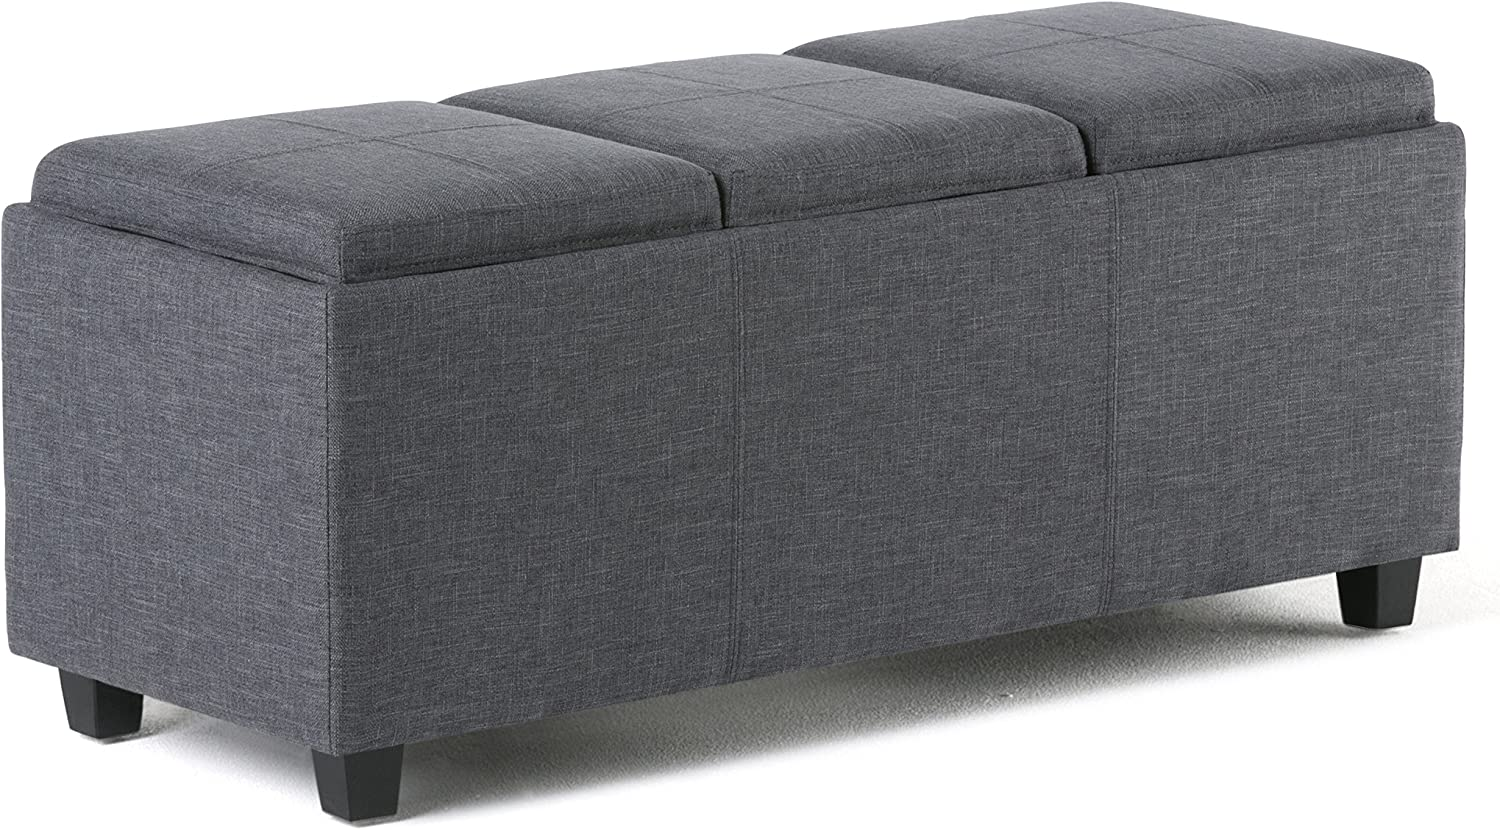 Simpli Home 3AXCAVA-OTTBNCH-02-GL Avalon 42 inch Wide ContemporaryStorage Ottoman in Slate Grey Linen Look Fabric